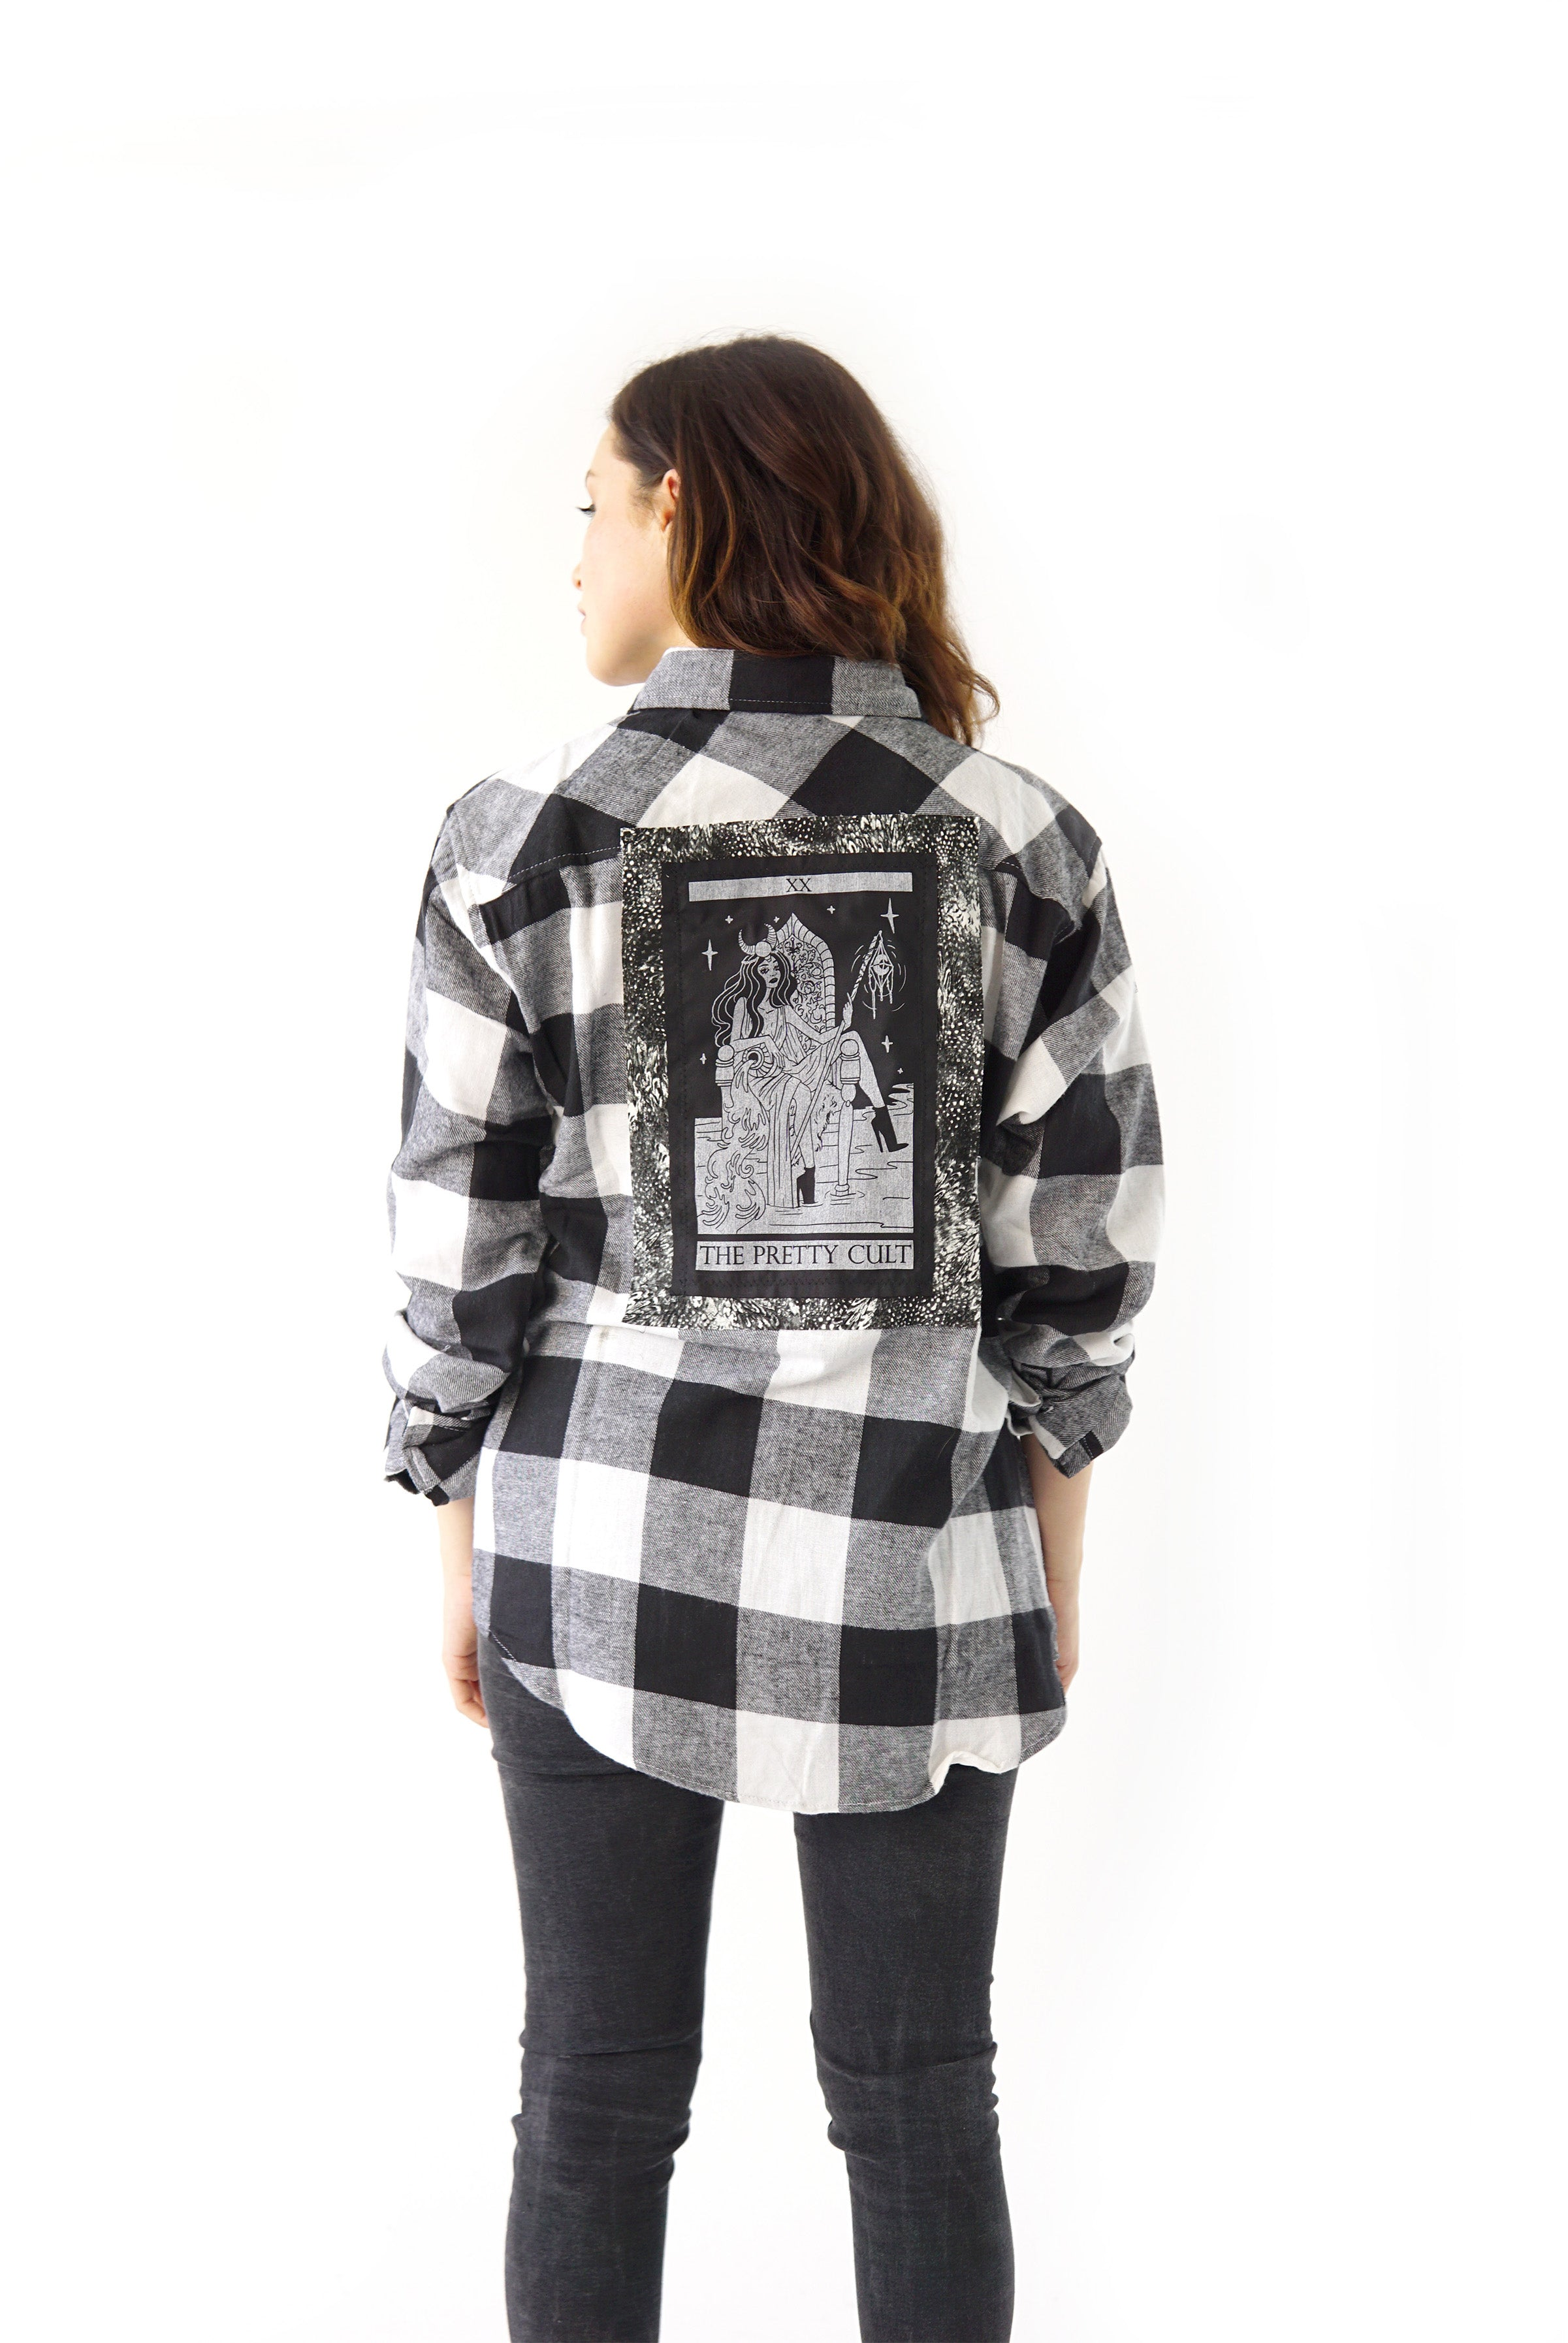 Cool Black Pretty Cult Tarot Flannel